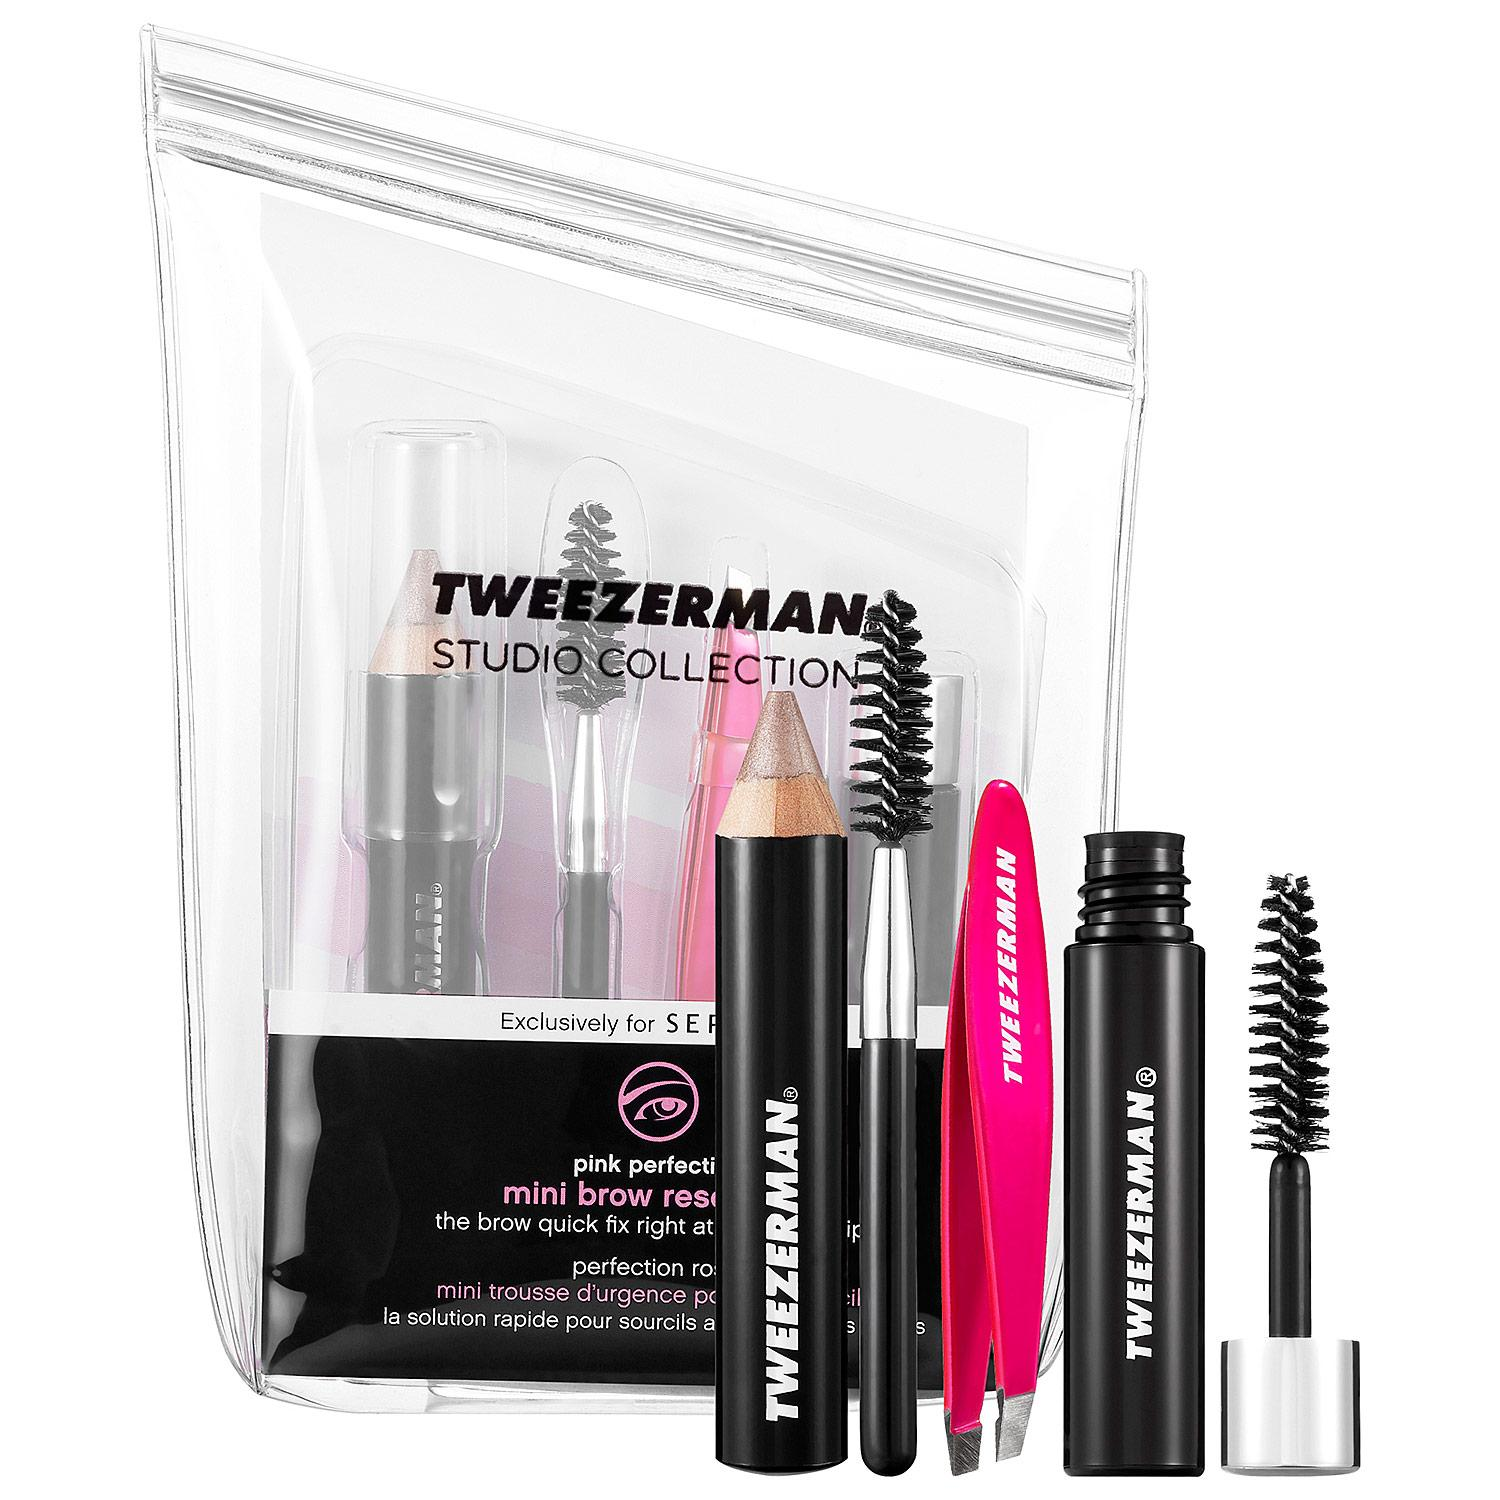 Hot Pink Mini Brow Rescue Kit